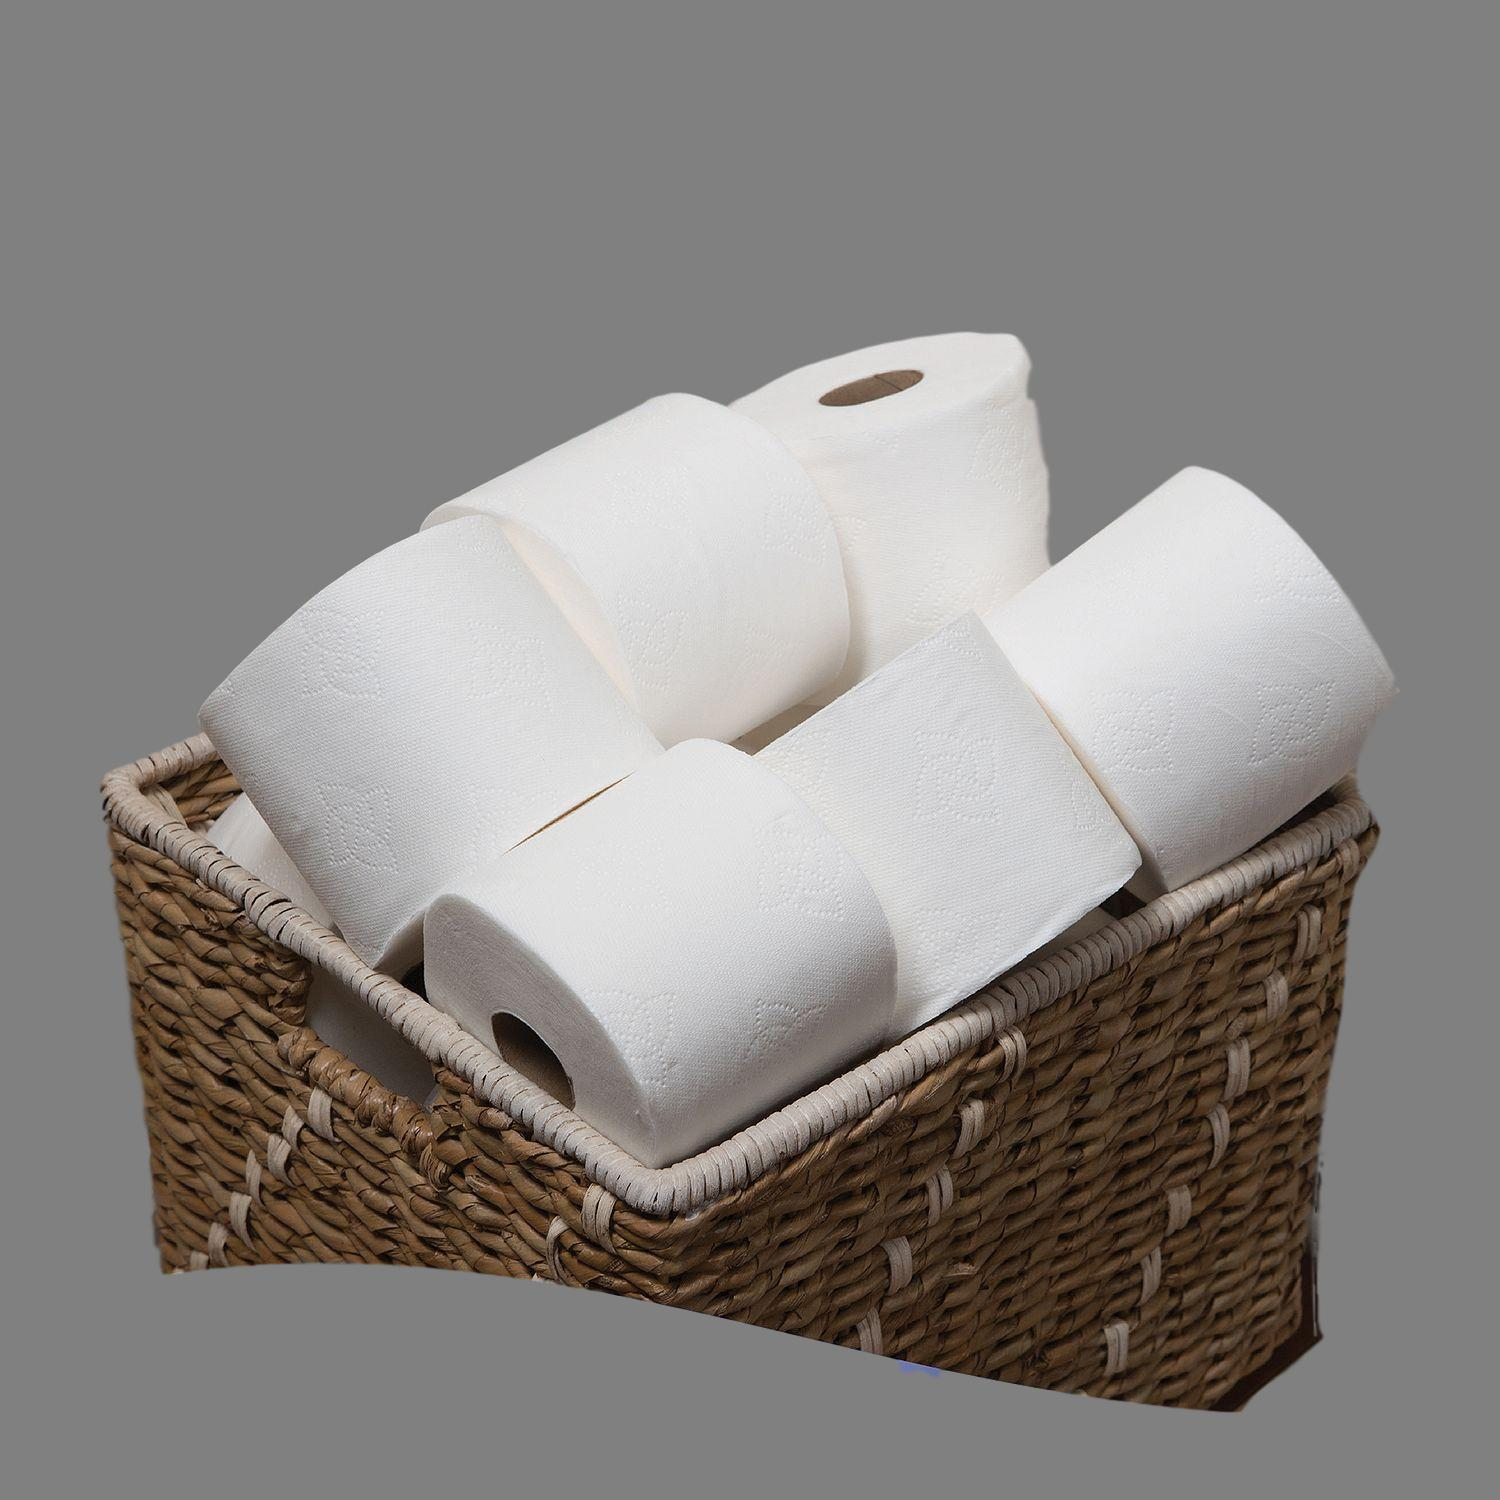 stunning Members Mark Ultra Premium Bath Tissue Part - 14: ... Ultra Premium Bath Tissue Members Mark 2 Ply Mega Roll 45 Rolls 275  Septic Safe